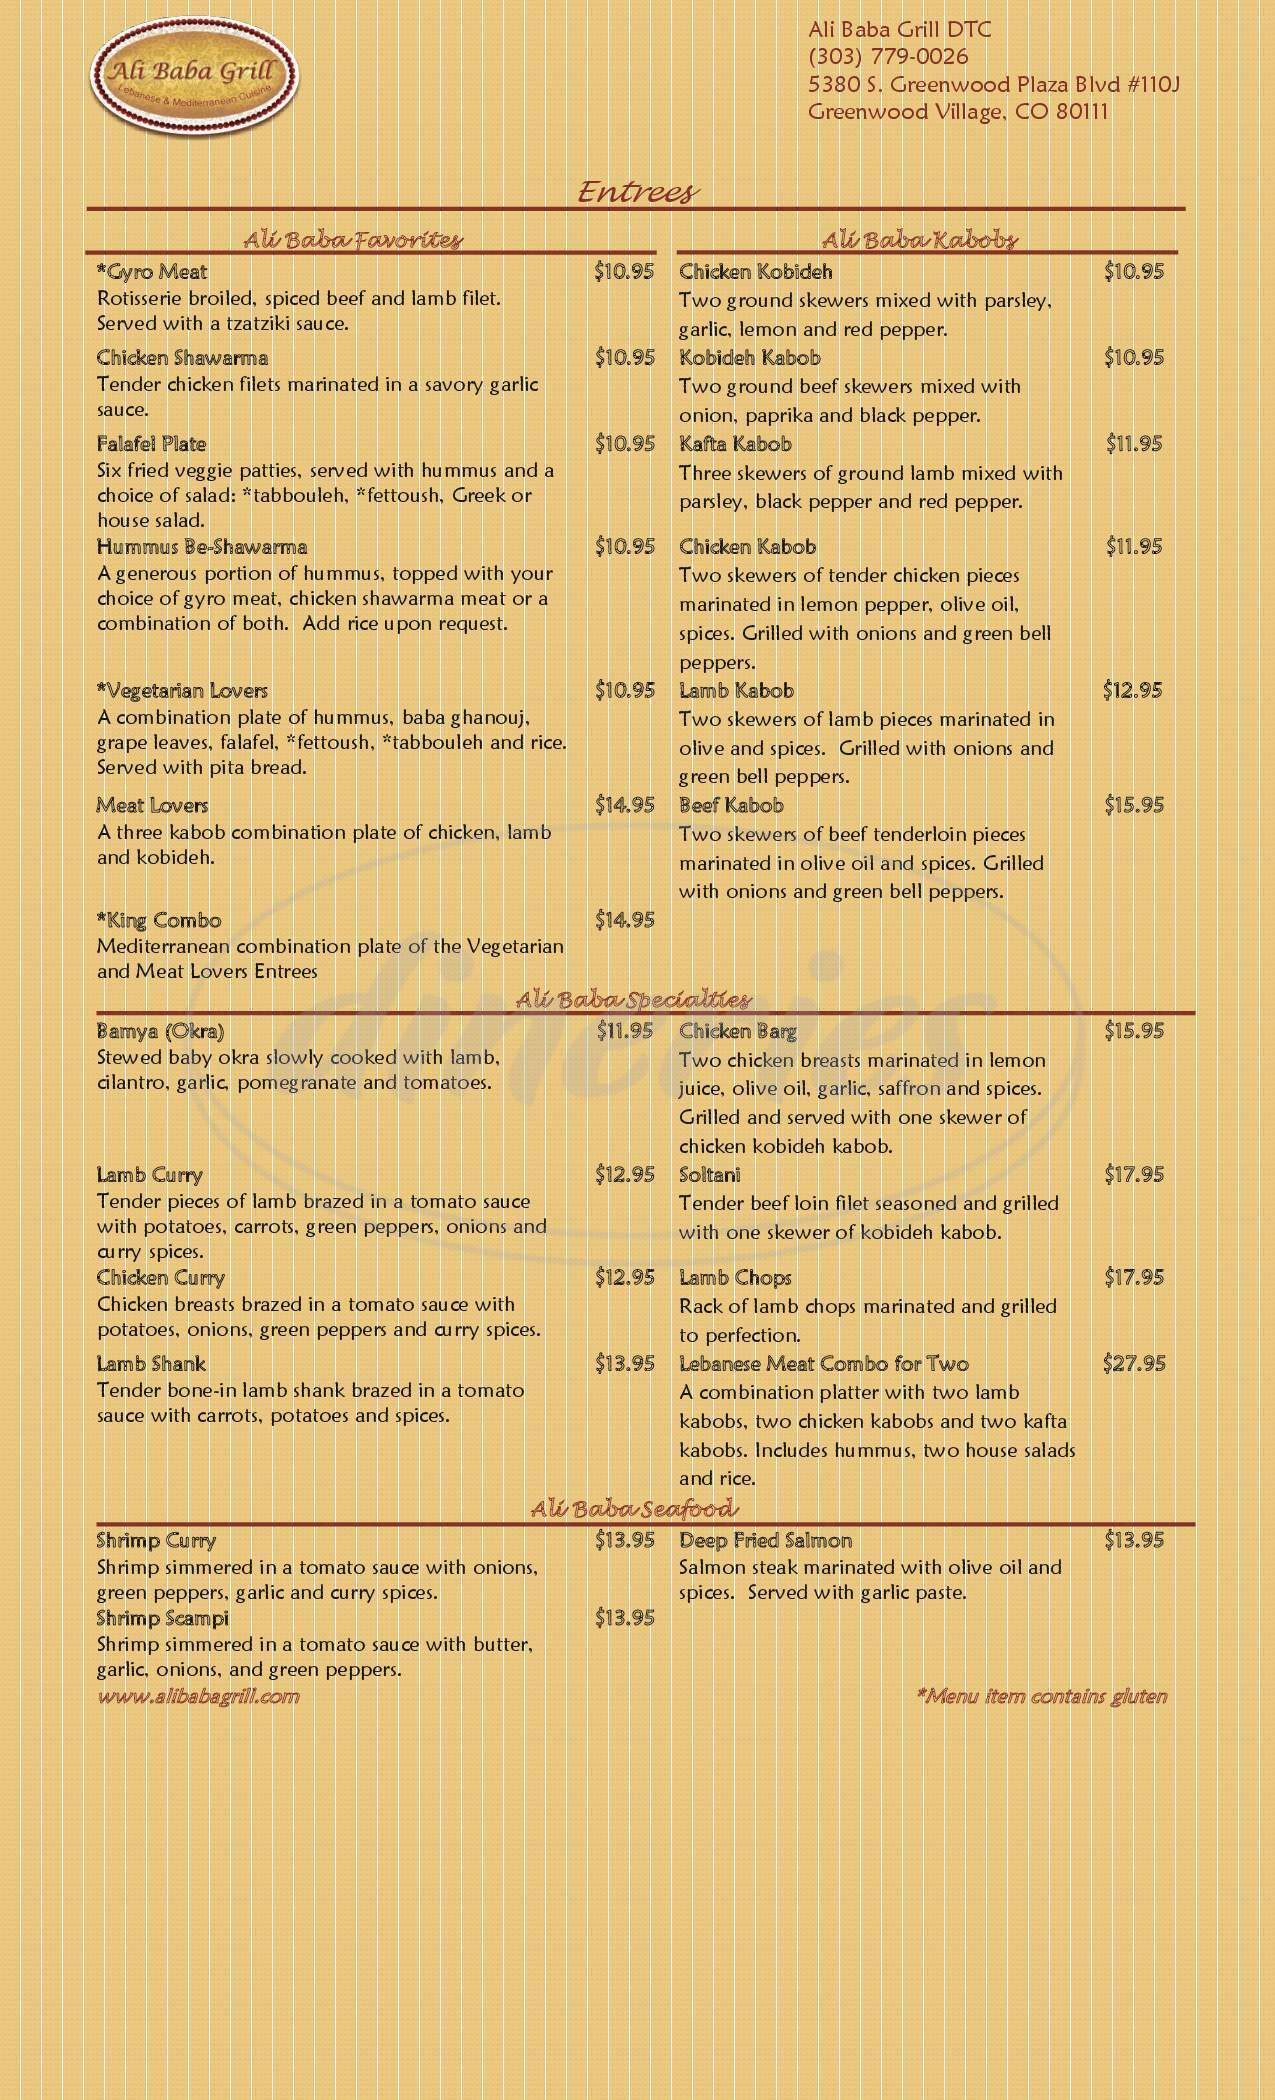 menu for Ali Baba Grill